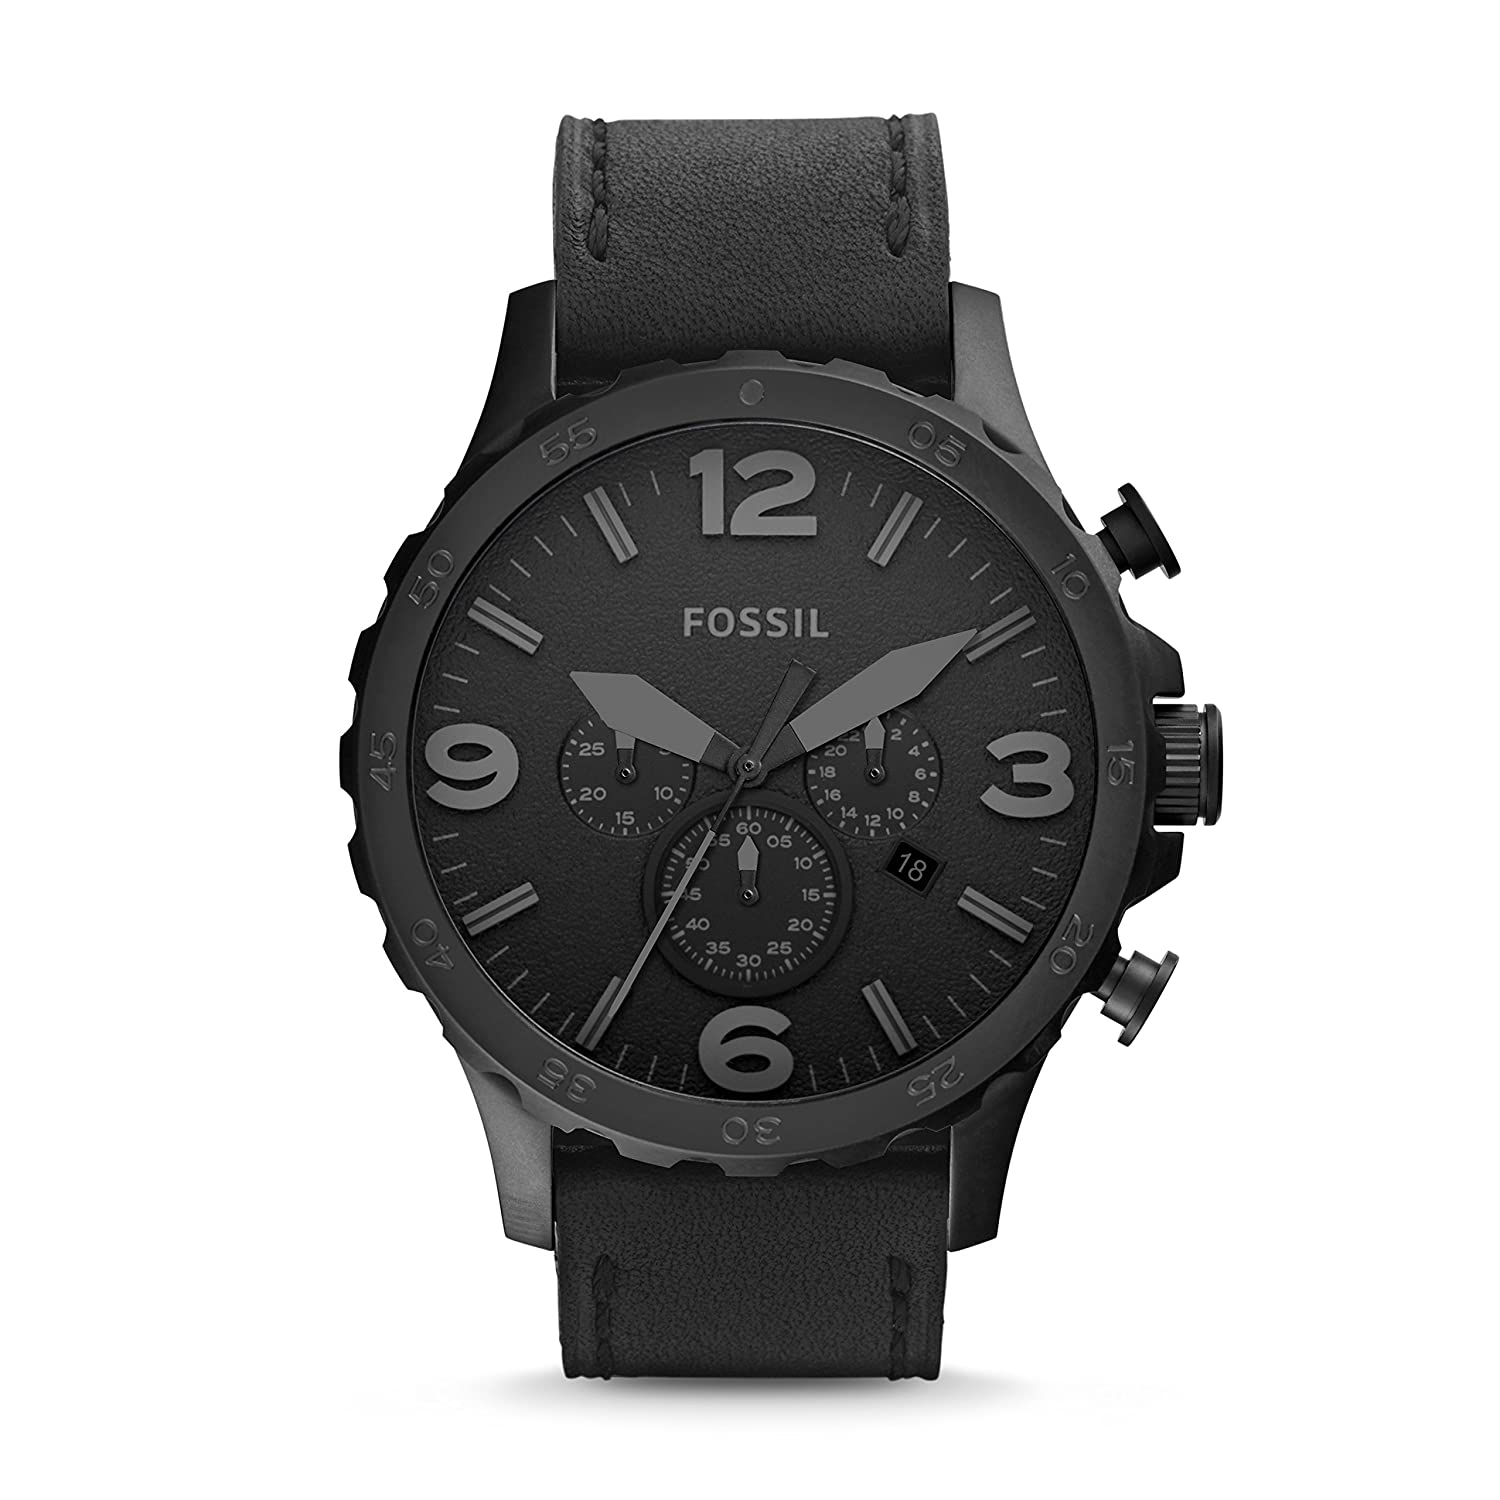 3b1f51e861ab Amazon.com  Fossil Men s Nate Quartz Stainless Steel and Leather  Chronograph Watch